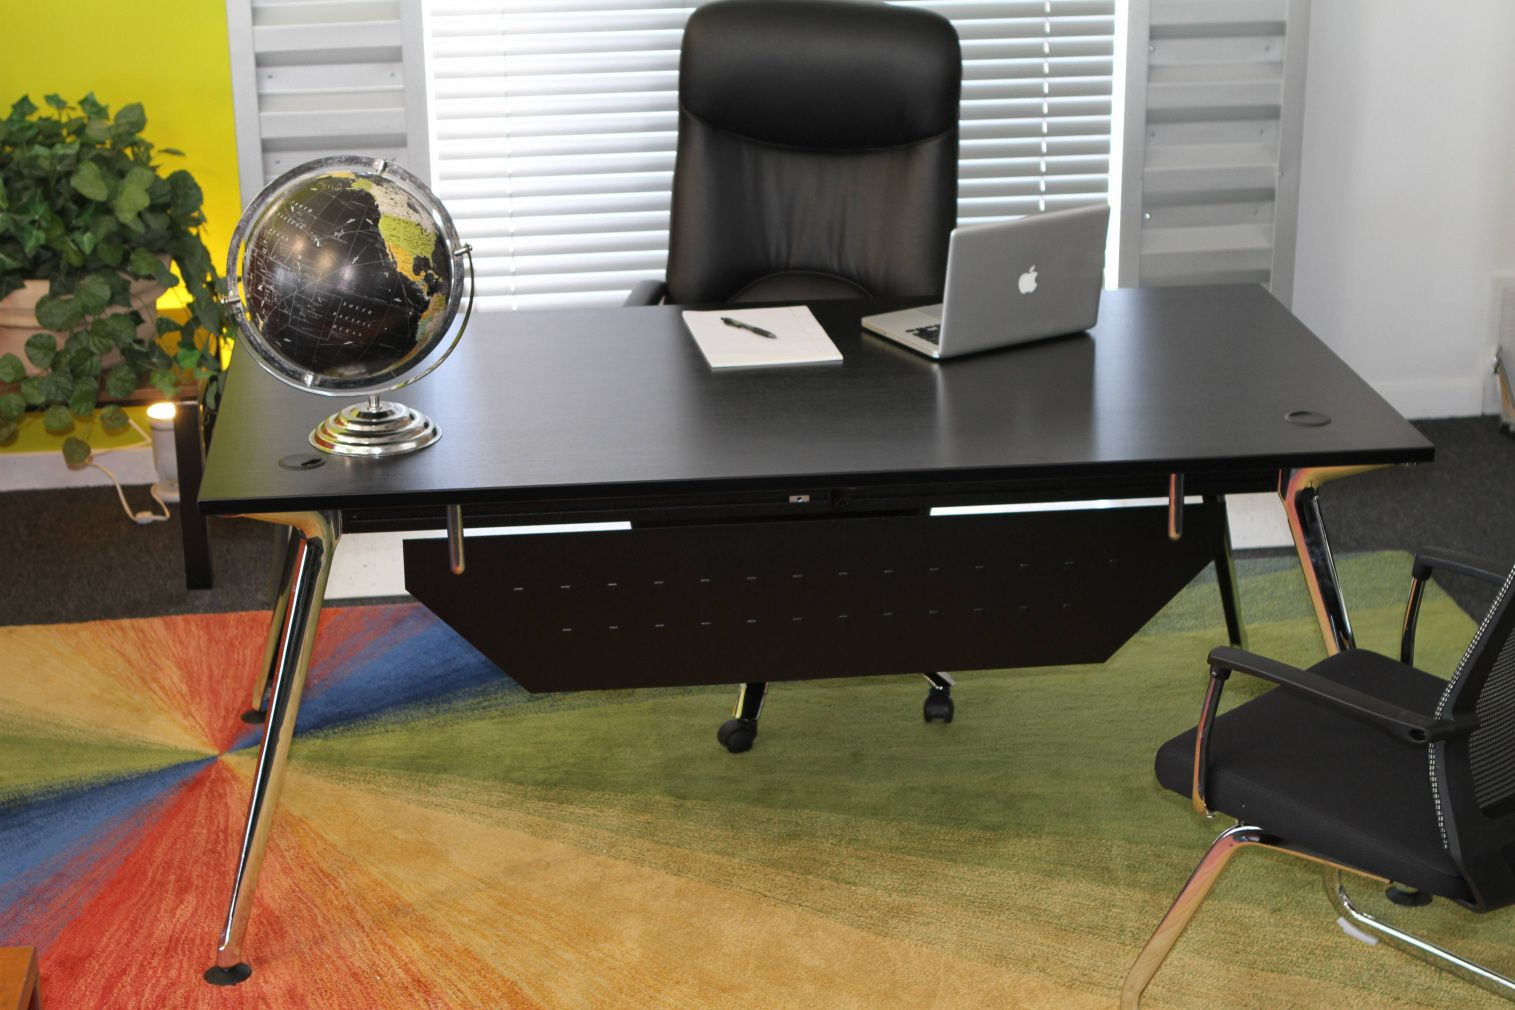 Cheap Office Desks Used Modern Home Office Furniture Check More At Http Www Drjamesghoodblog Com Cheap Office Desks Used